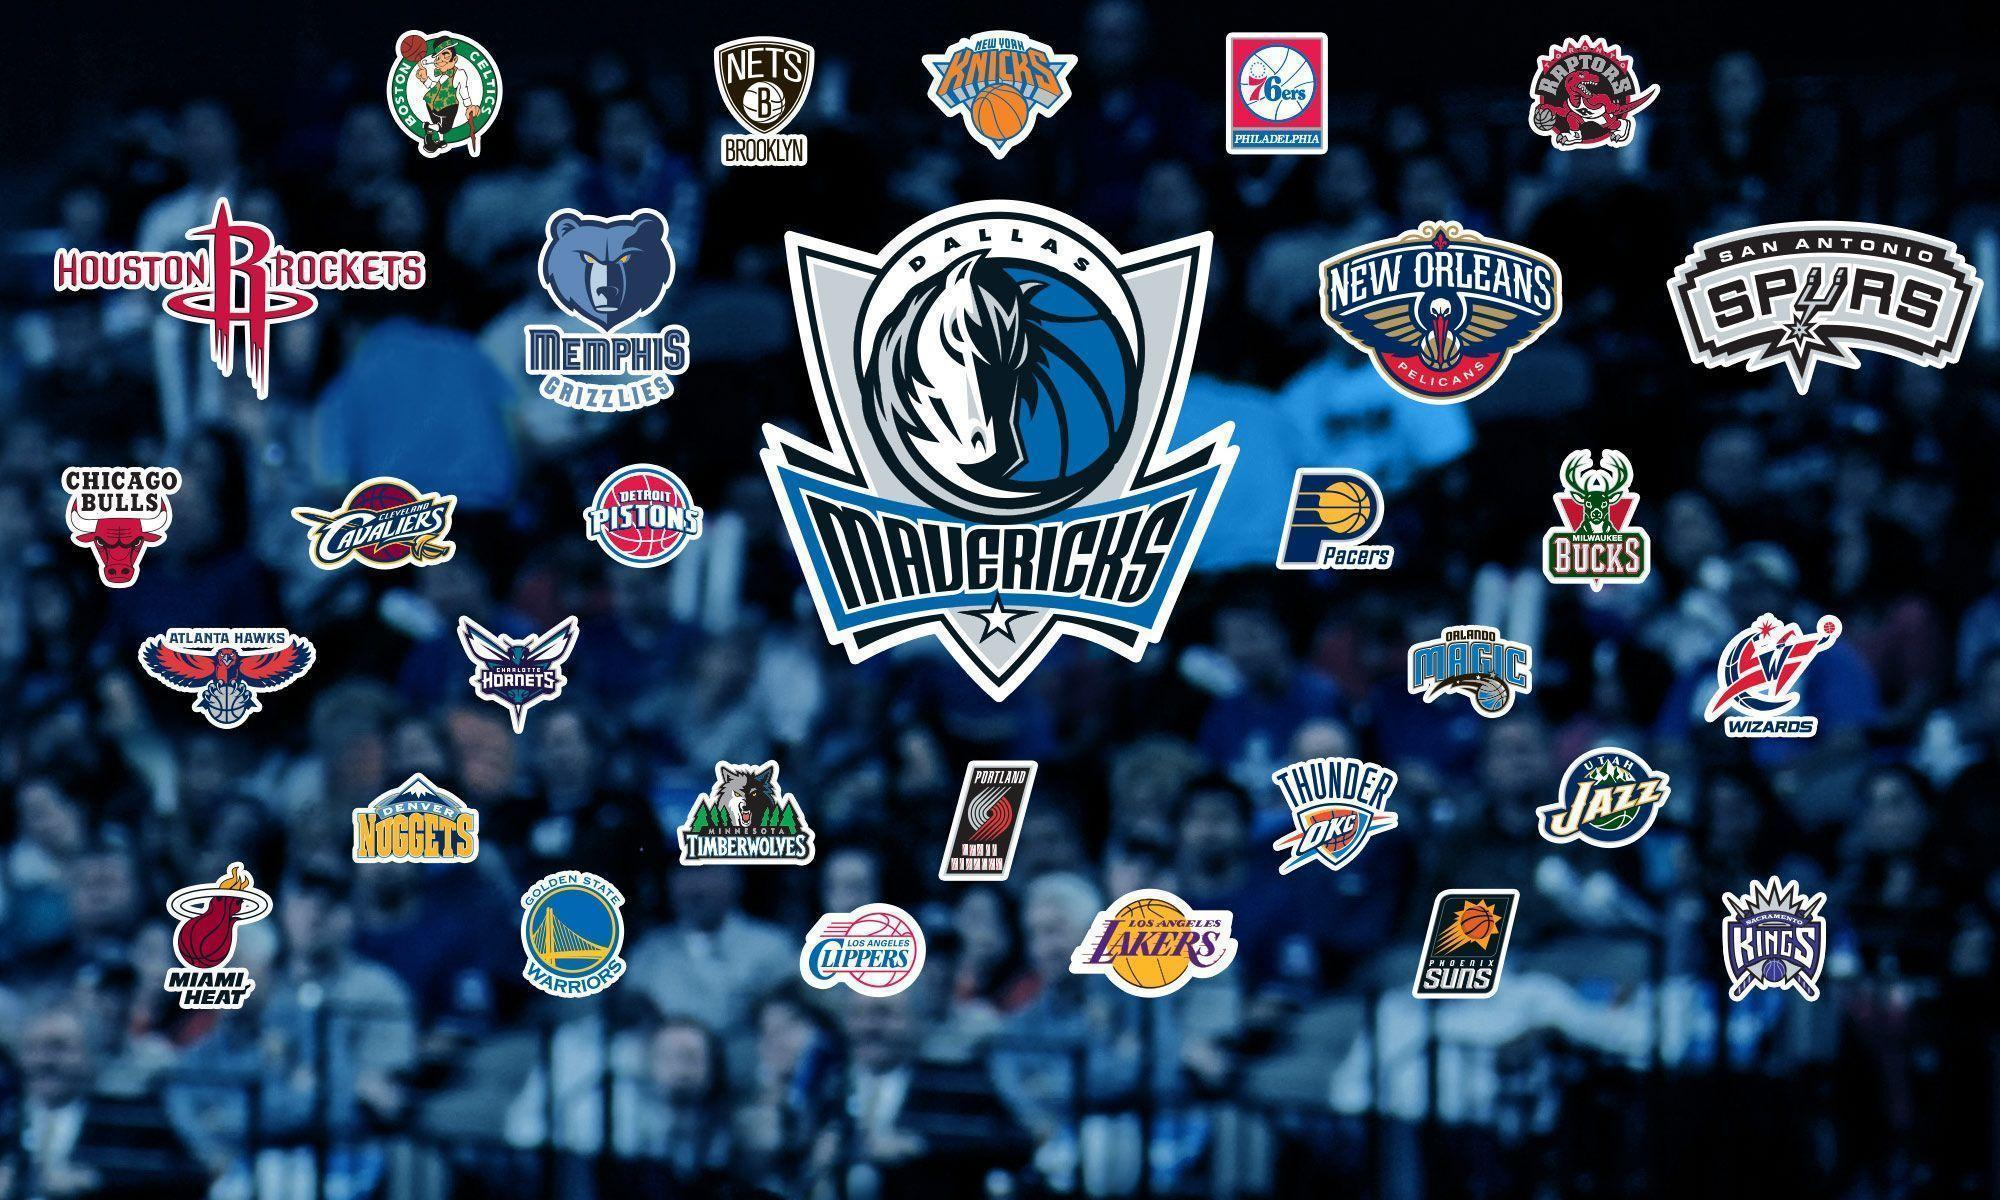 NBA Dallas Mavericks Logo Team Wallpaper HD 2016 In Basketball